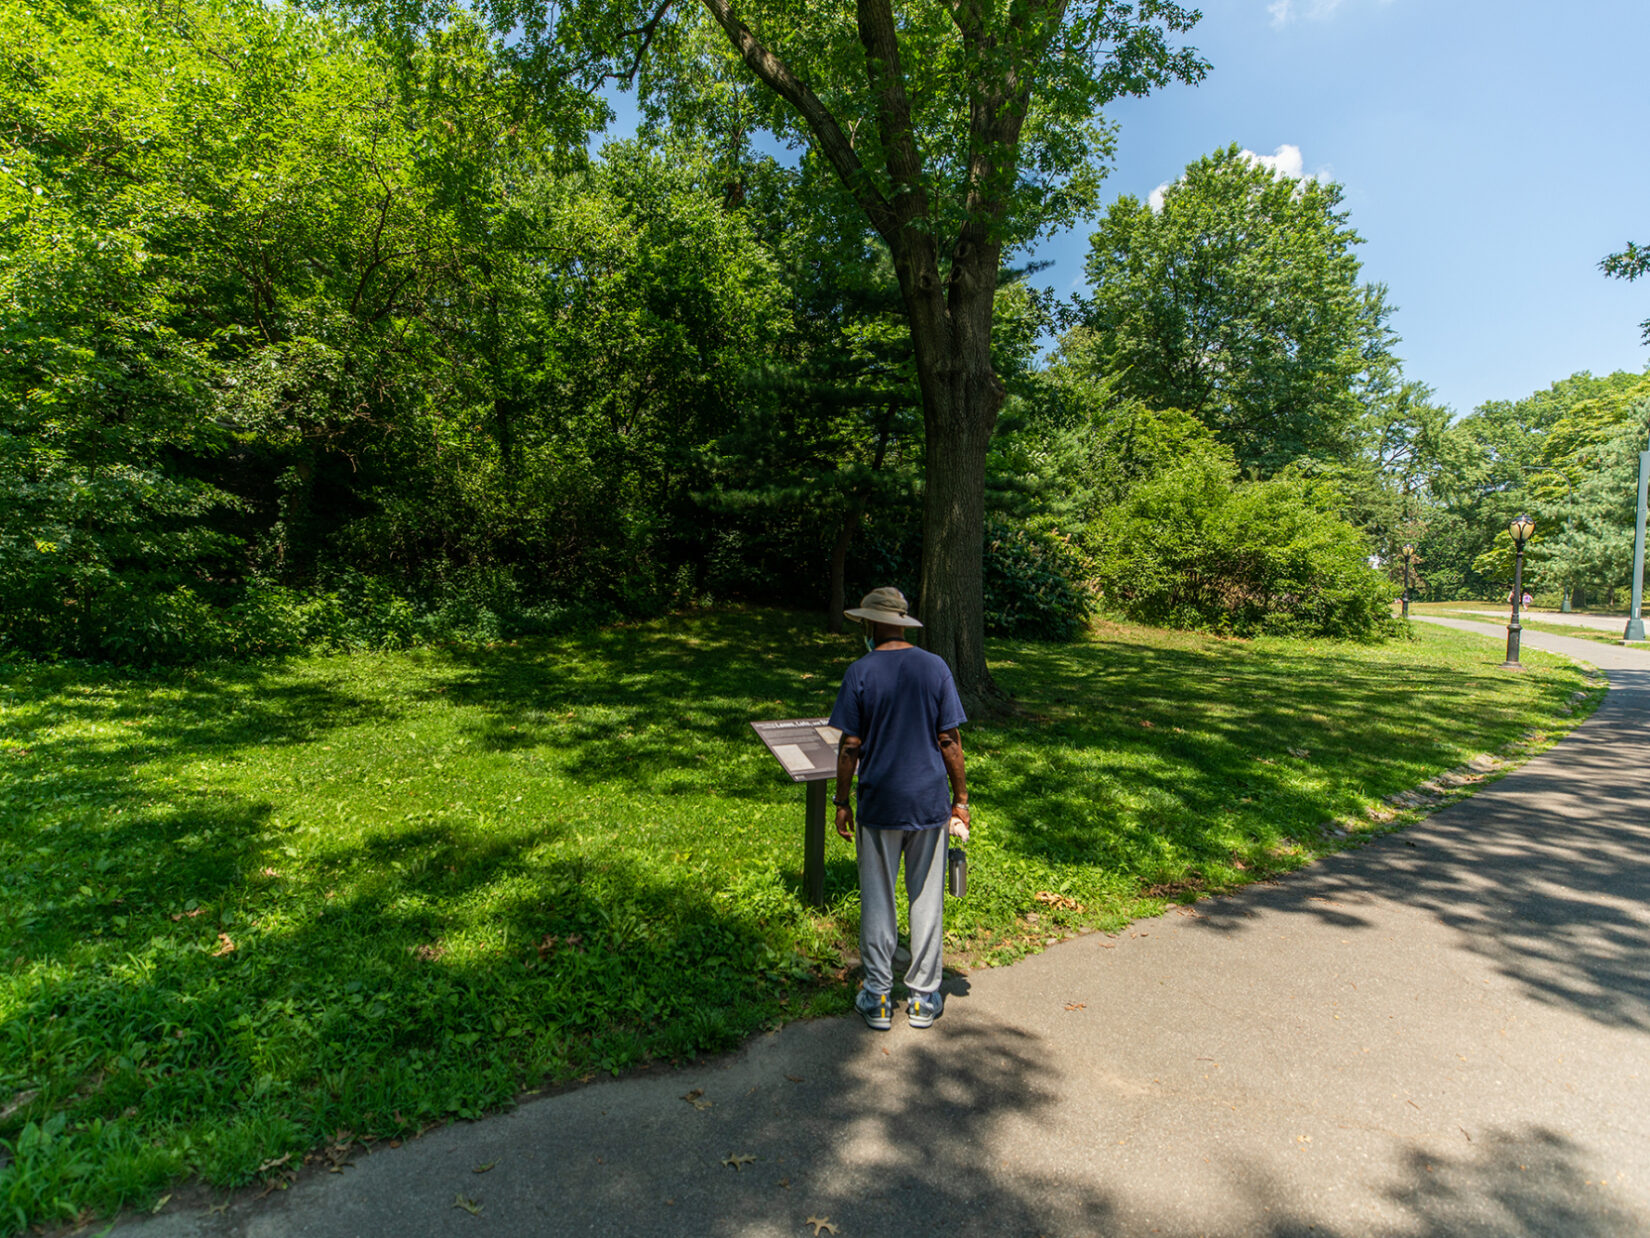 Park visitor reading Discover Seneca Village signage